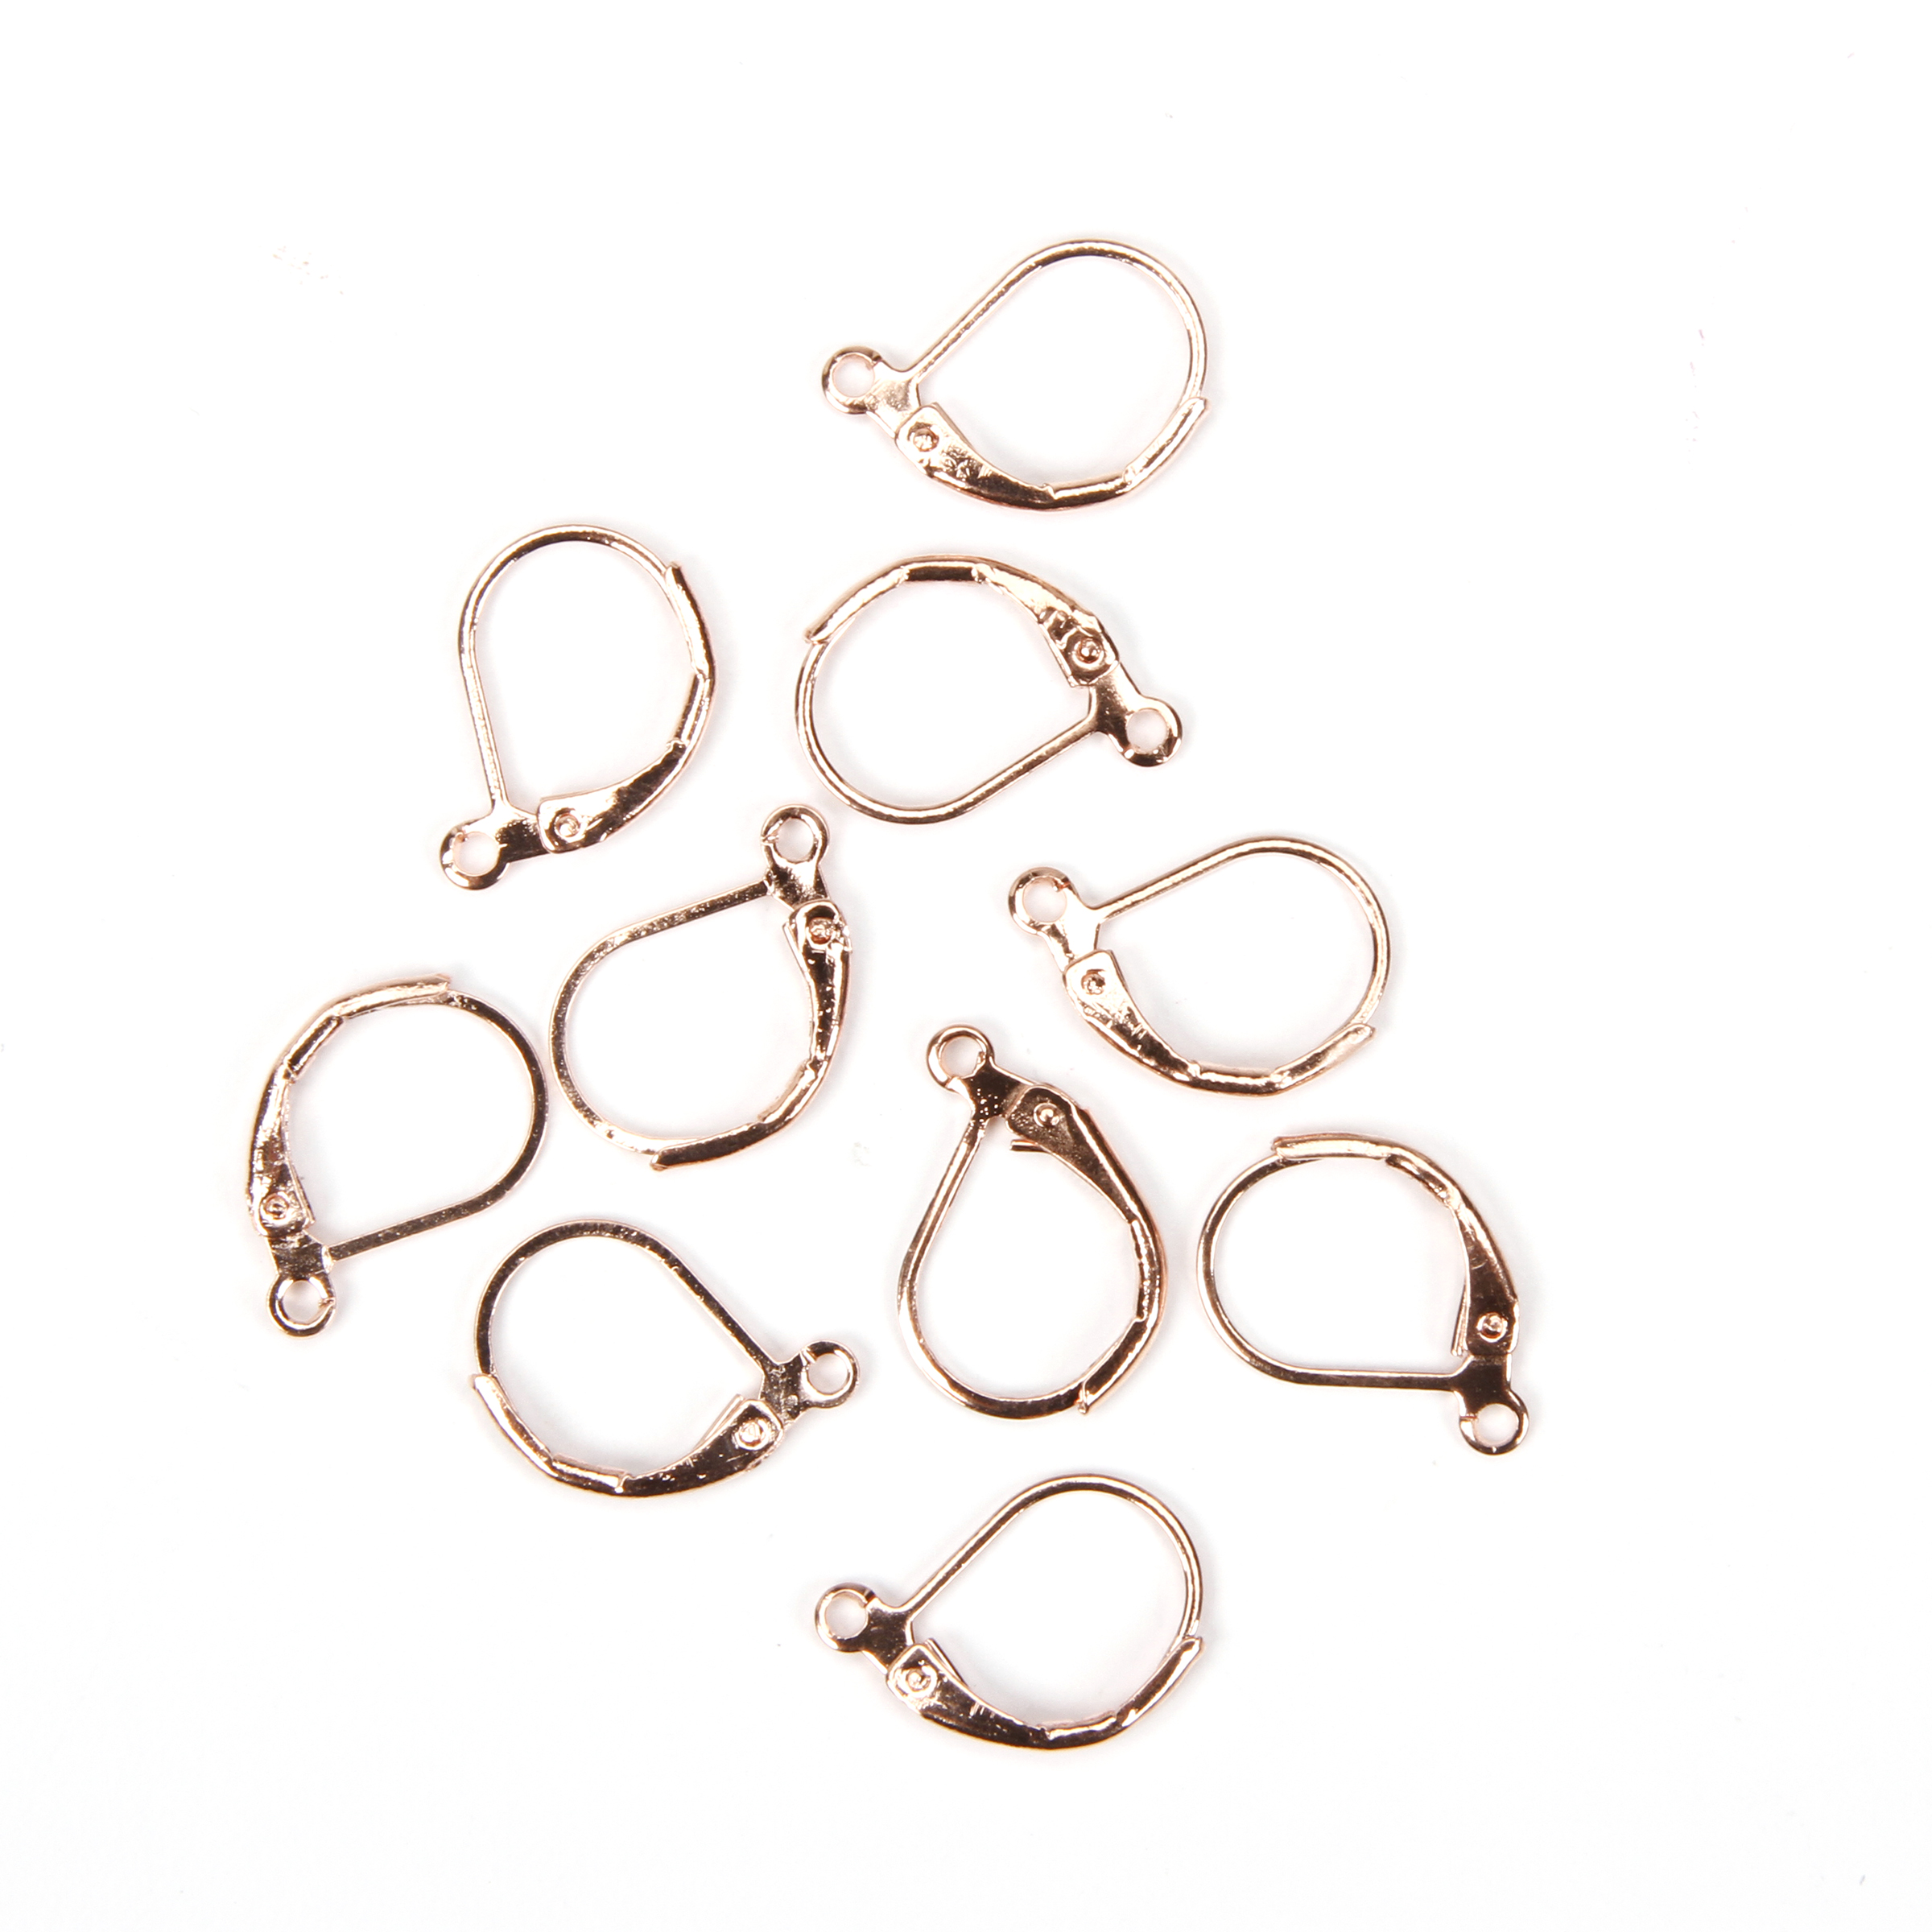 Rose Gold French Clip Earring Bases, 10pc/pkg